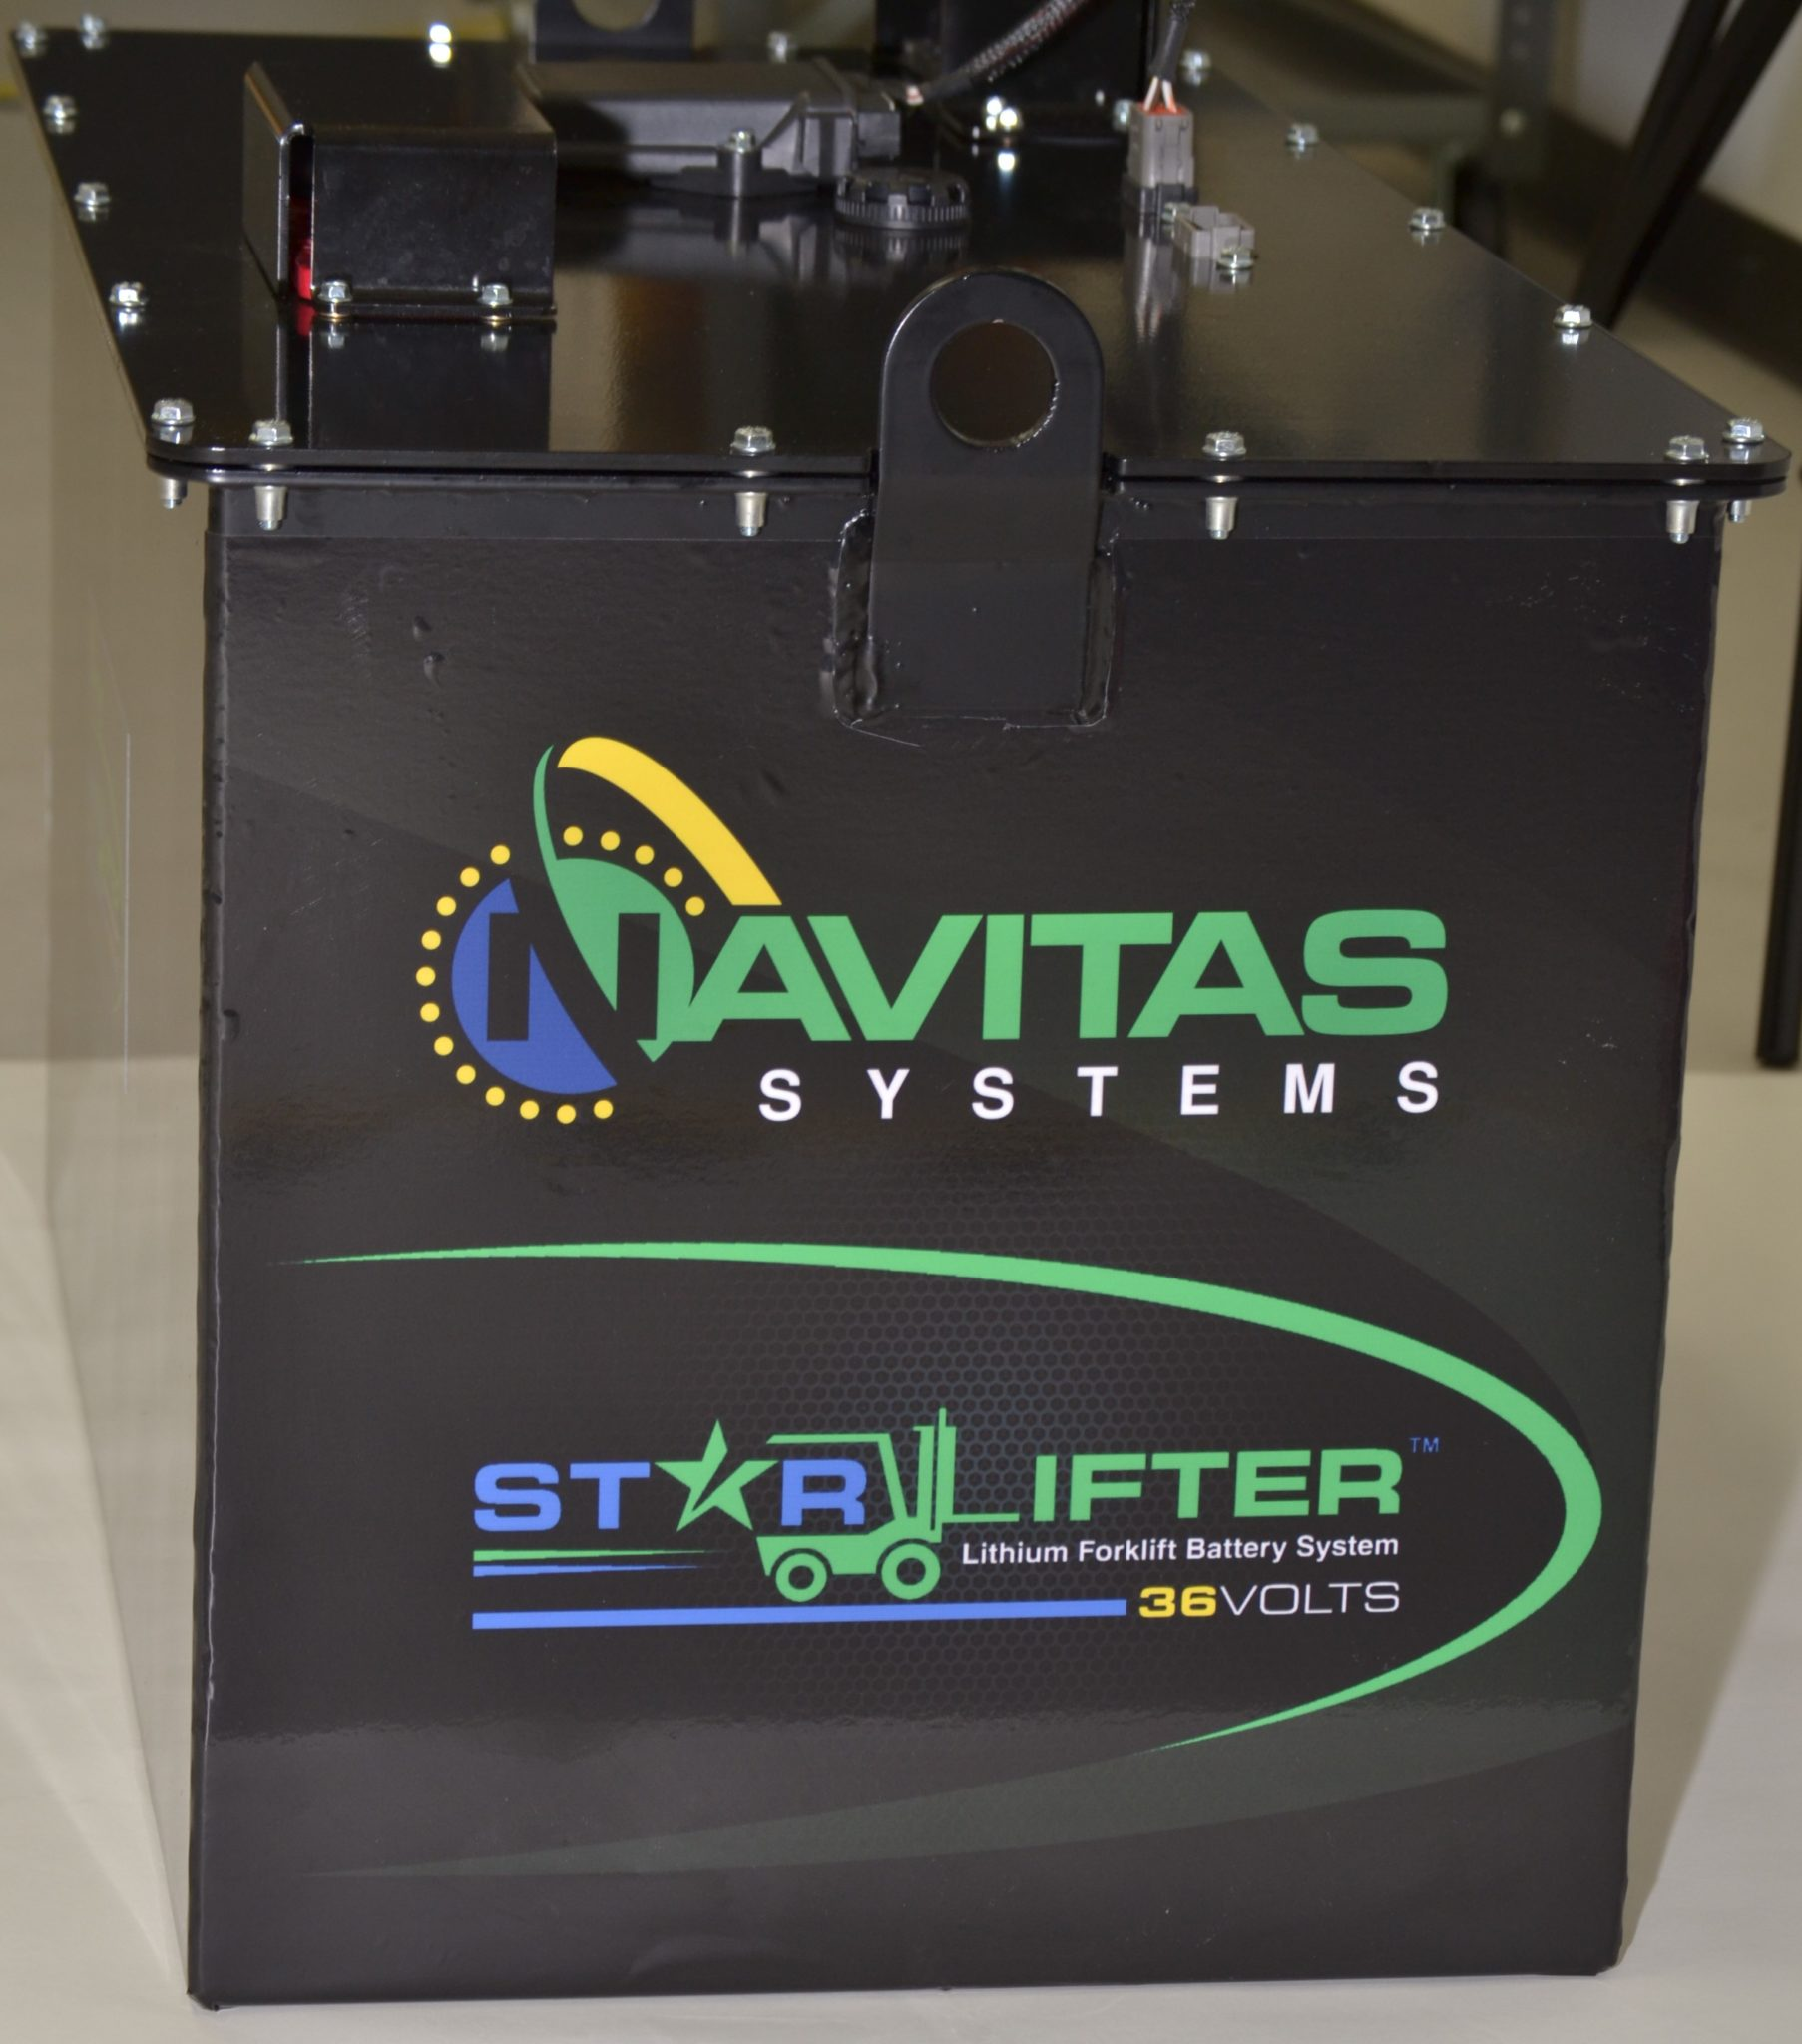 Navitas Systems Starlifter Deep Cycle Lithium Forklift Battery Side Top View